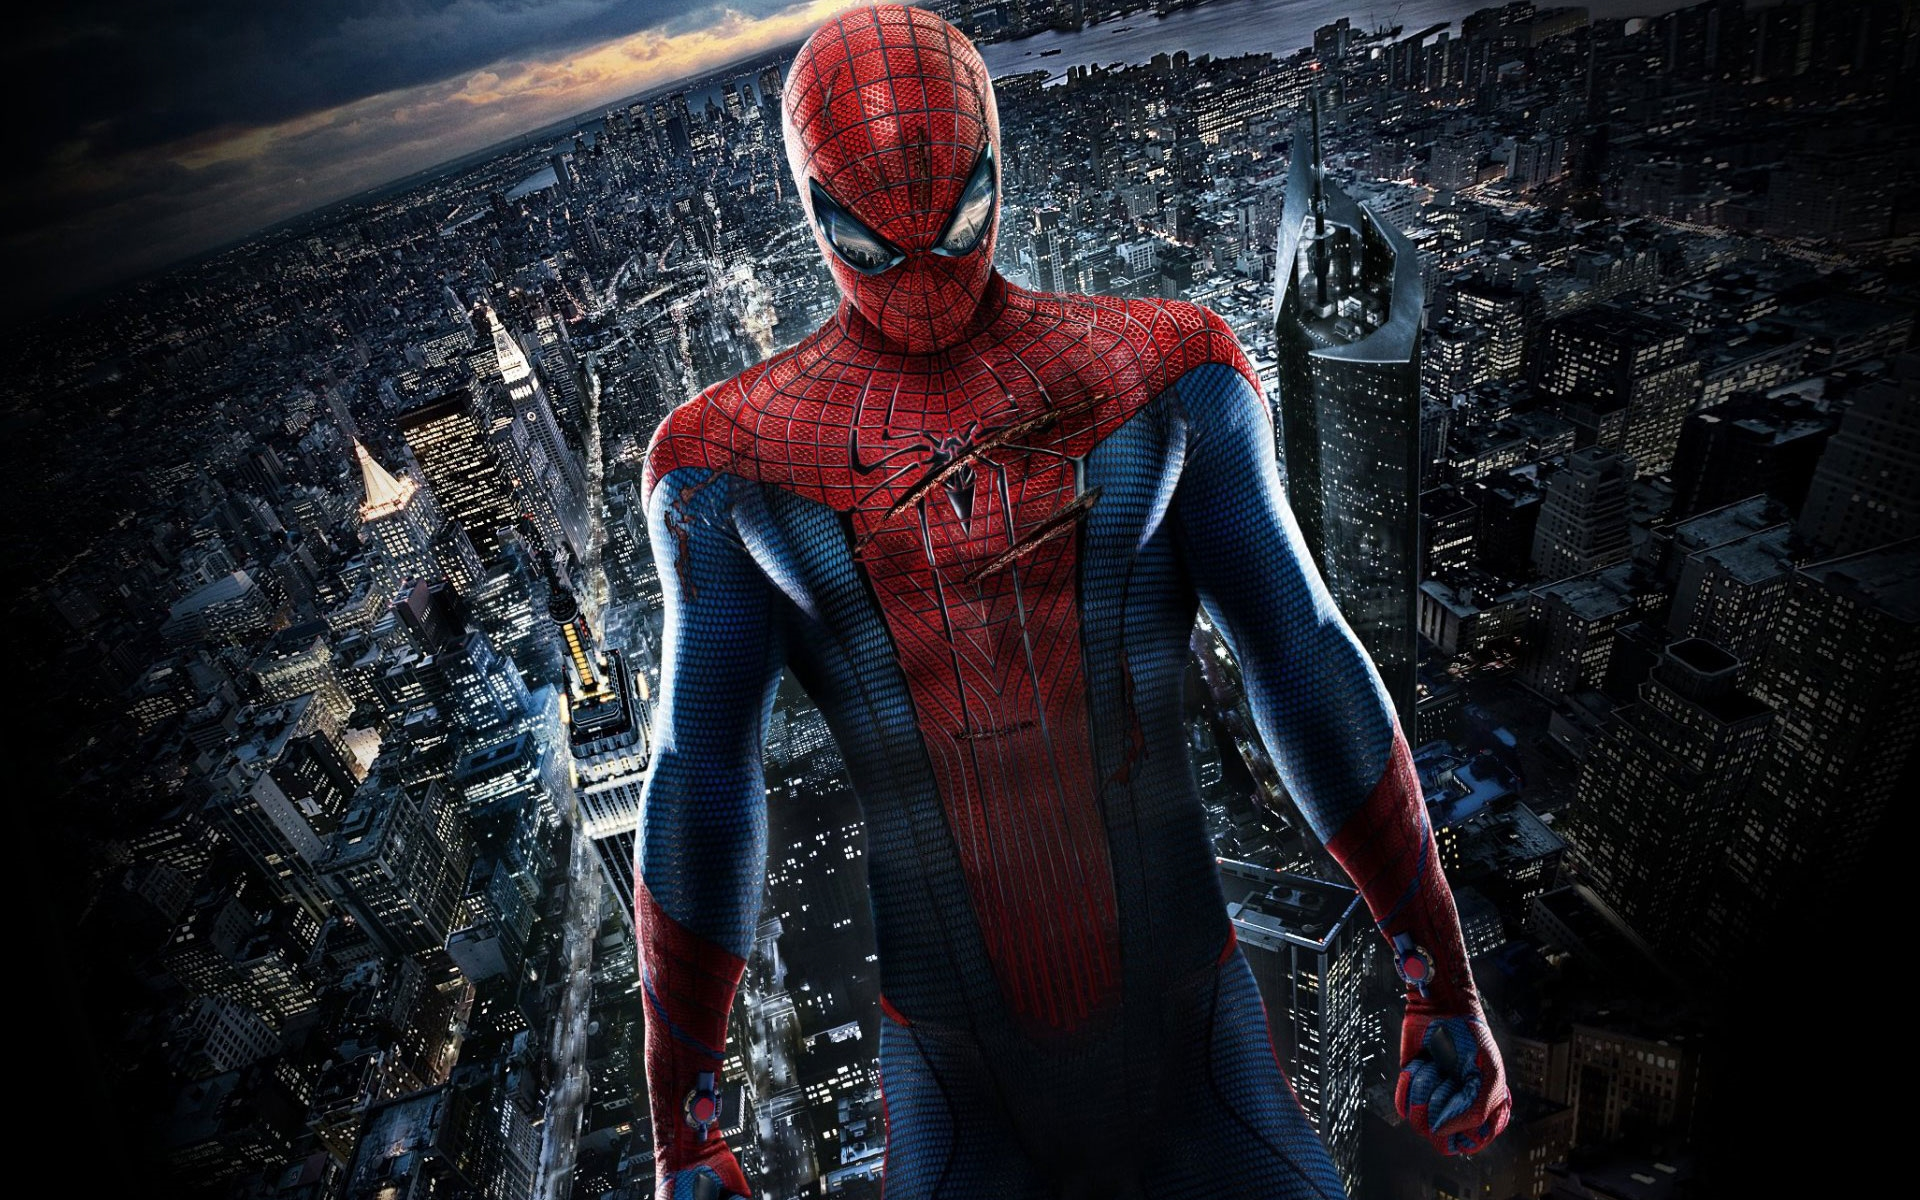 spiderman the first marvel movie spider man